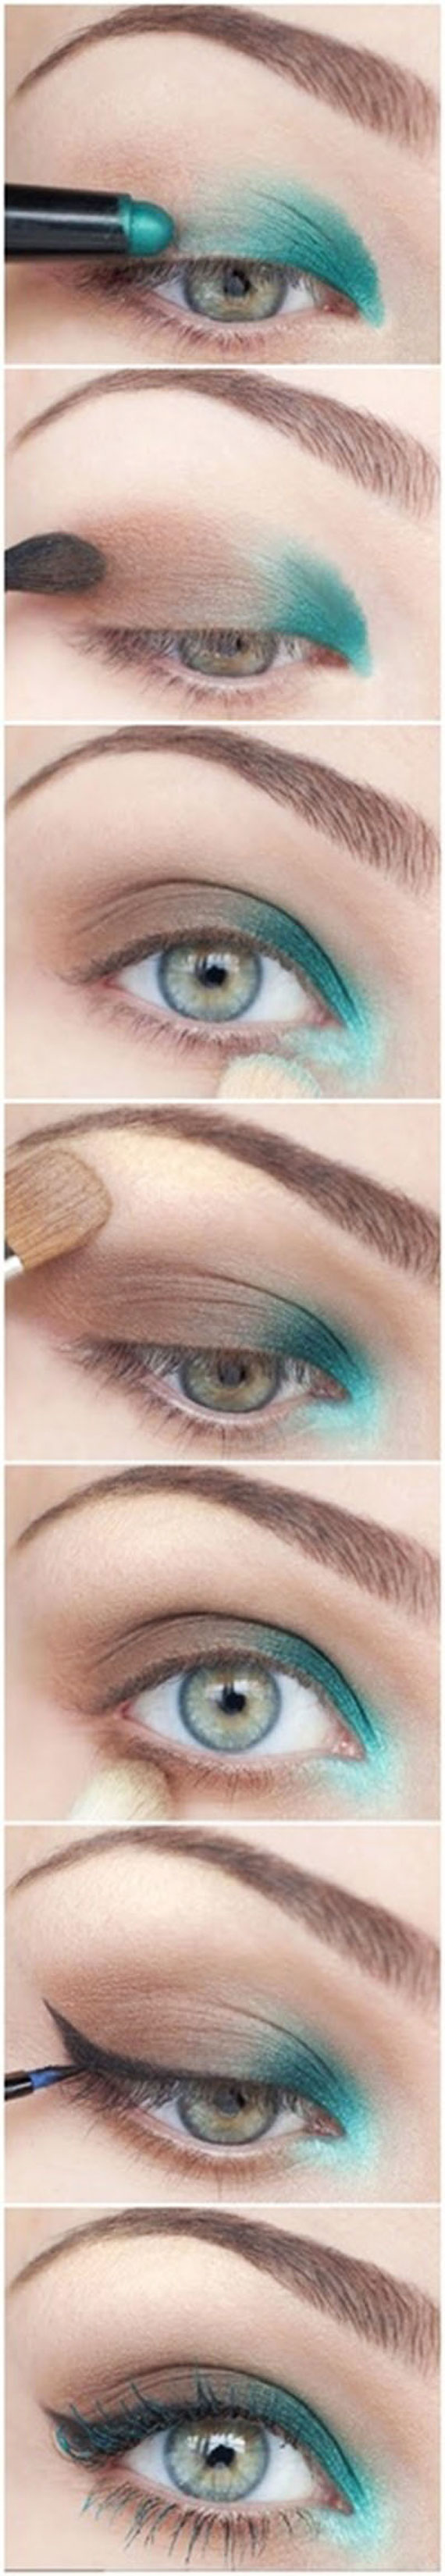 how-to-apply-eye-makeup-(2)